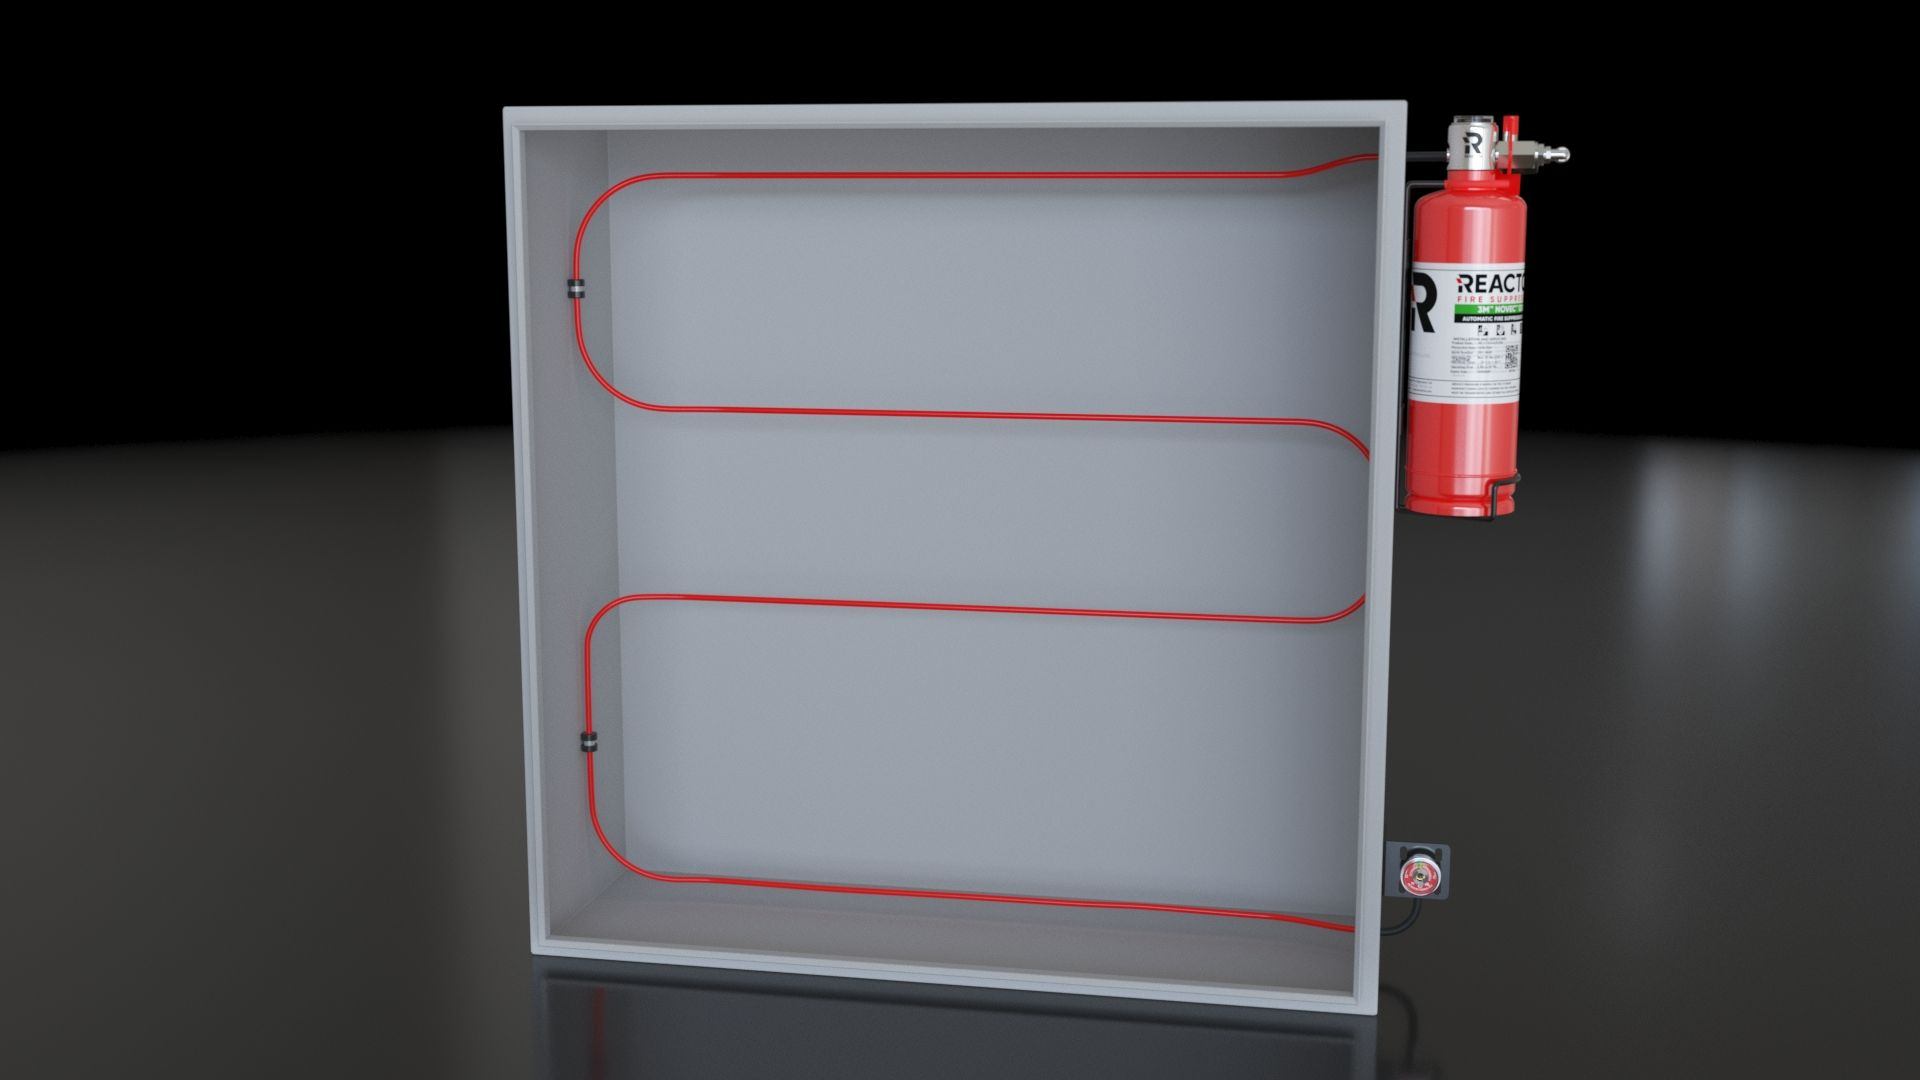 Direct Low Pressure Reacton Fire Suppression System